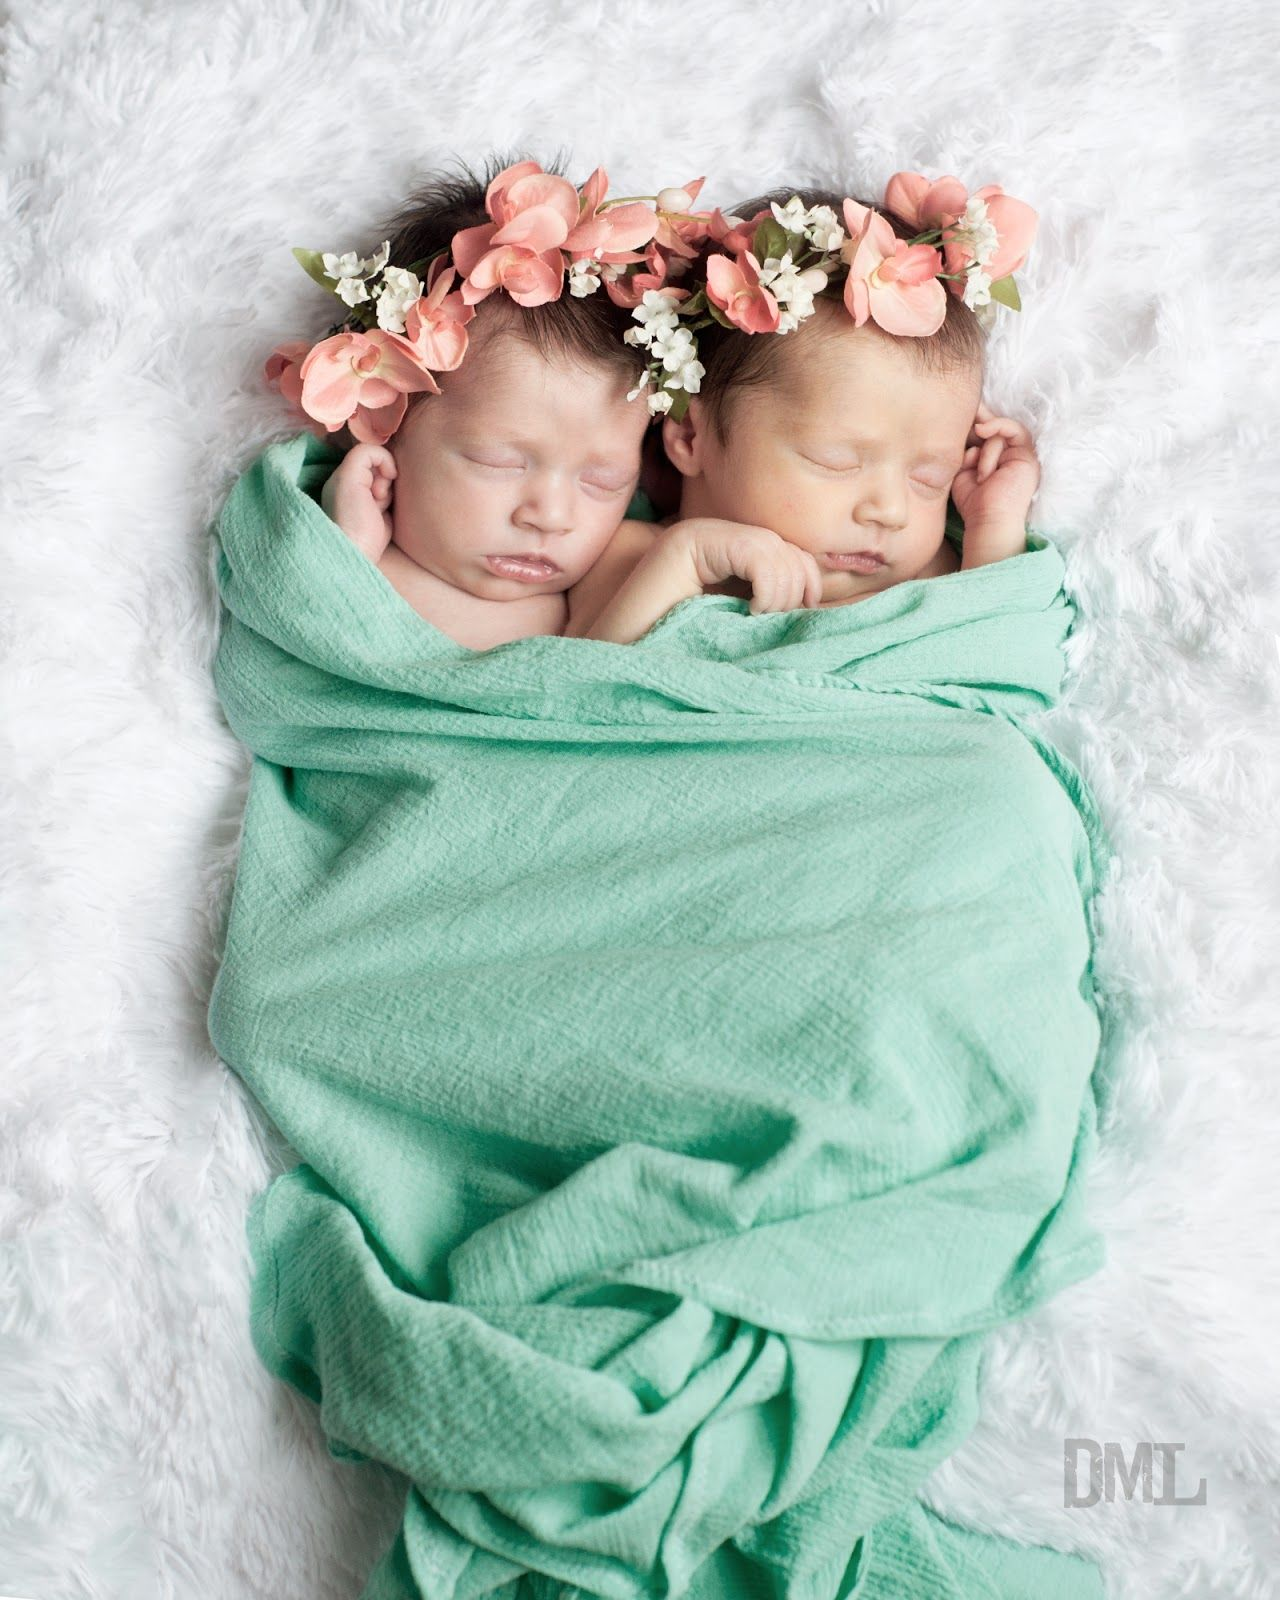 Newborn identical twin girls